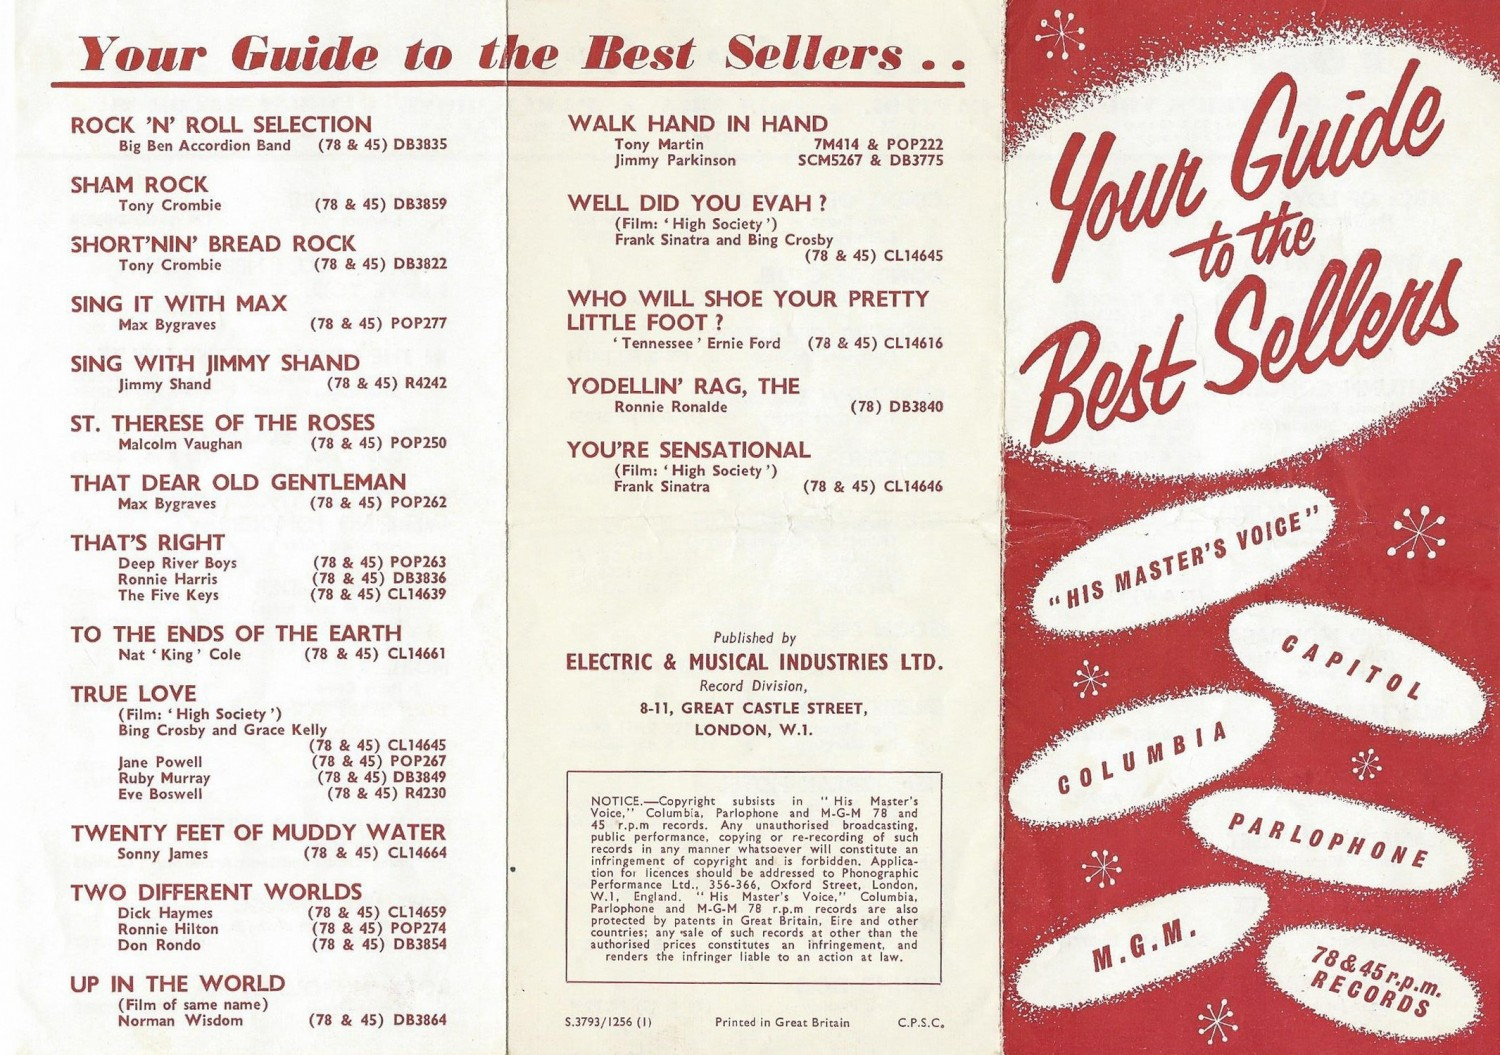 HMV Your Guide To Best Sellers 1956-12 (Alan White) 01